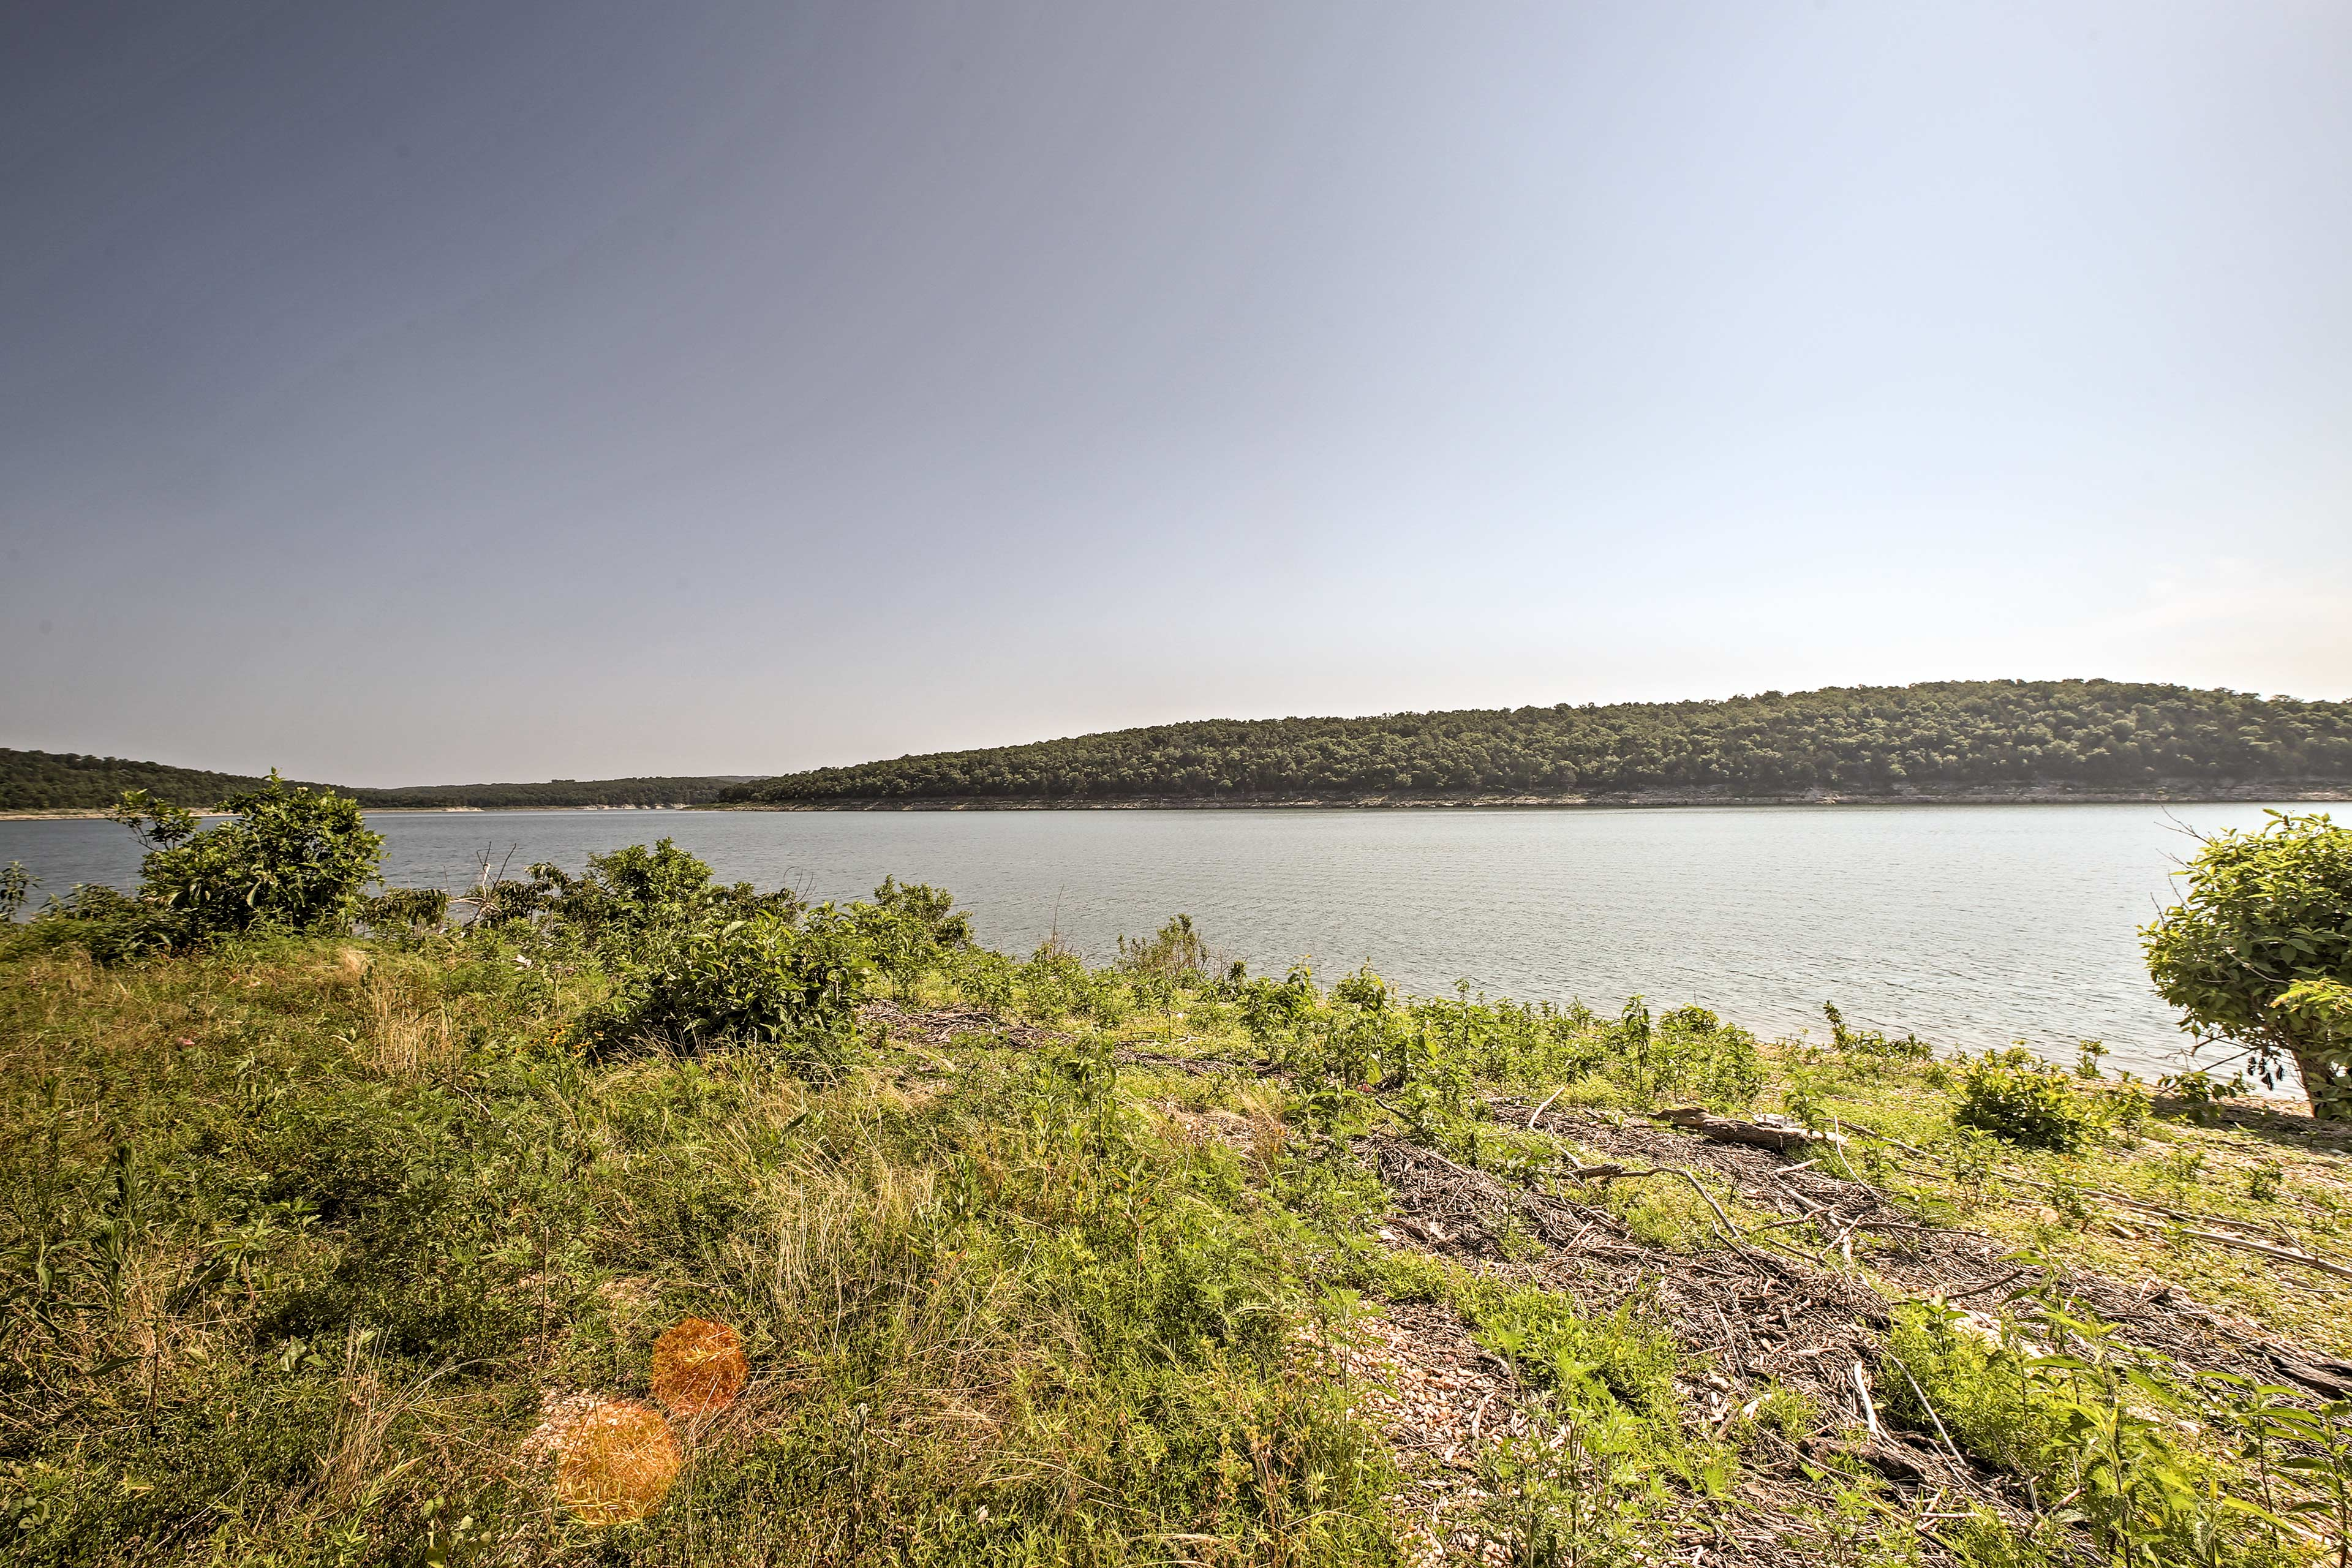 Bull Shoals Lake is just steps away and offers the opportunity for aquatic fun!